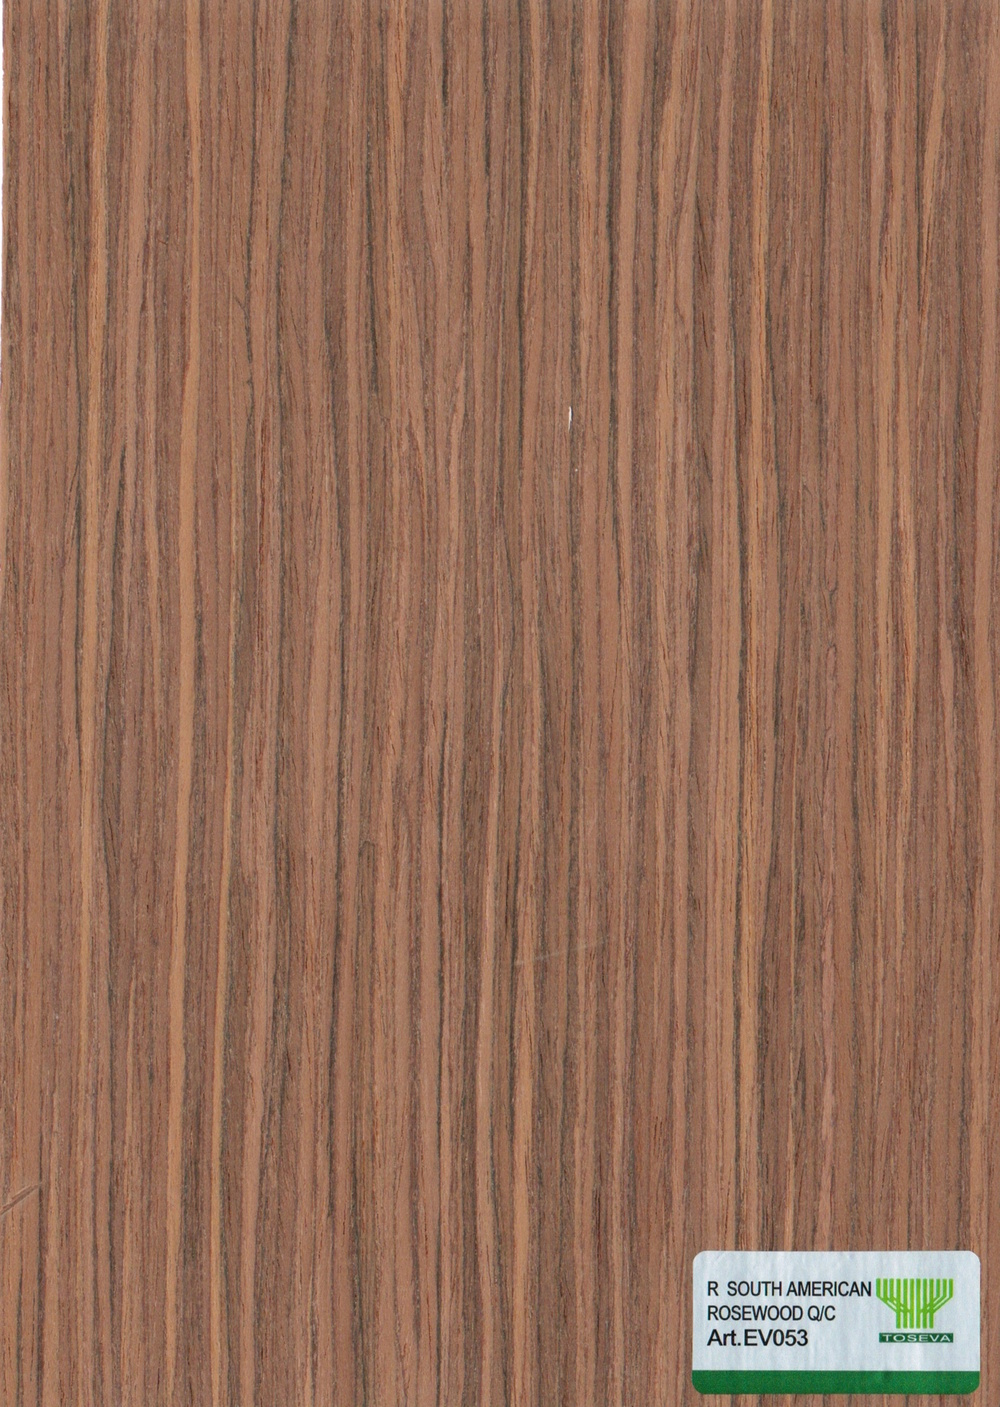 R SOUTH AMERICAN ROSEWOOD Q:C - EV053.jpeg